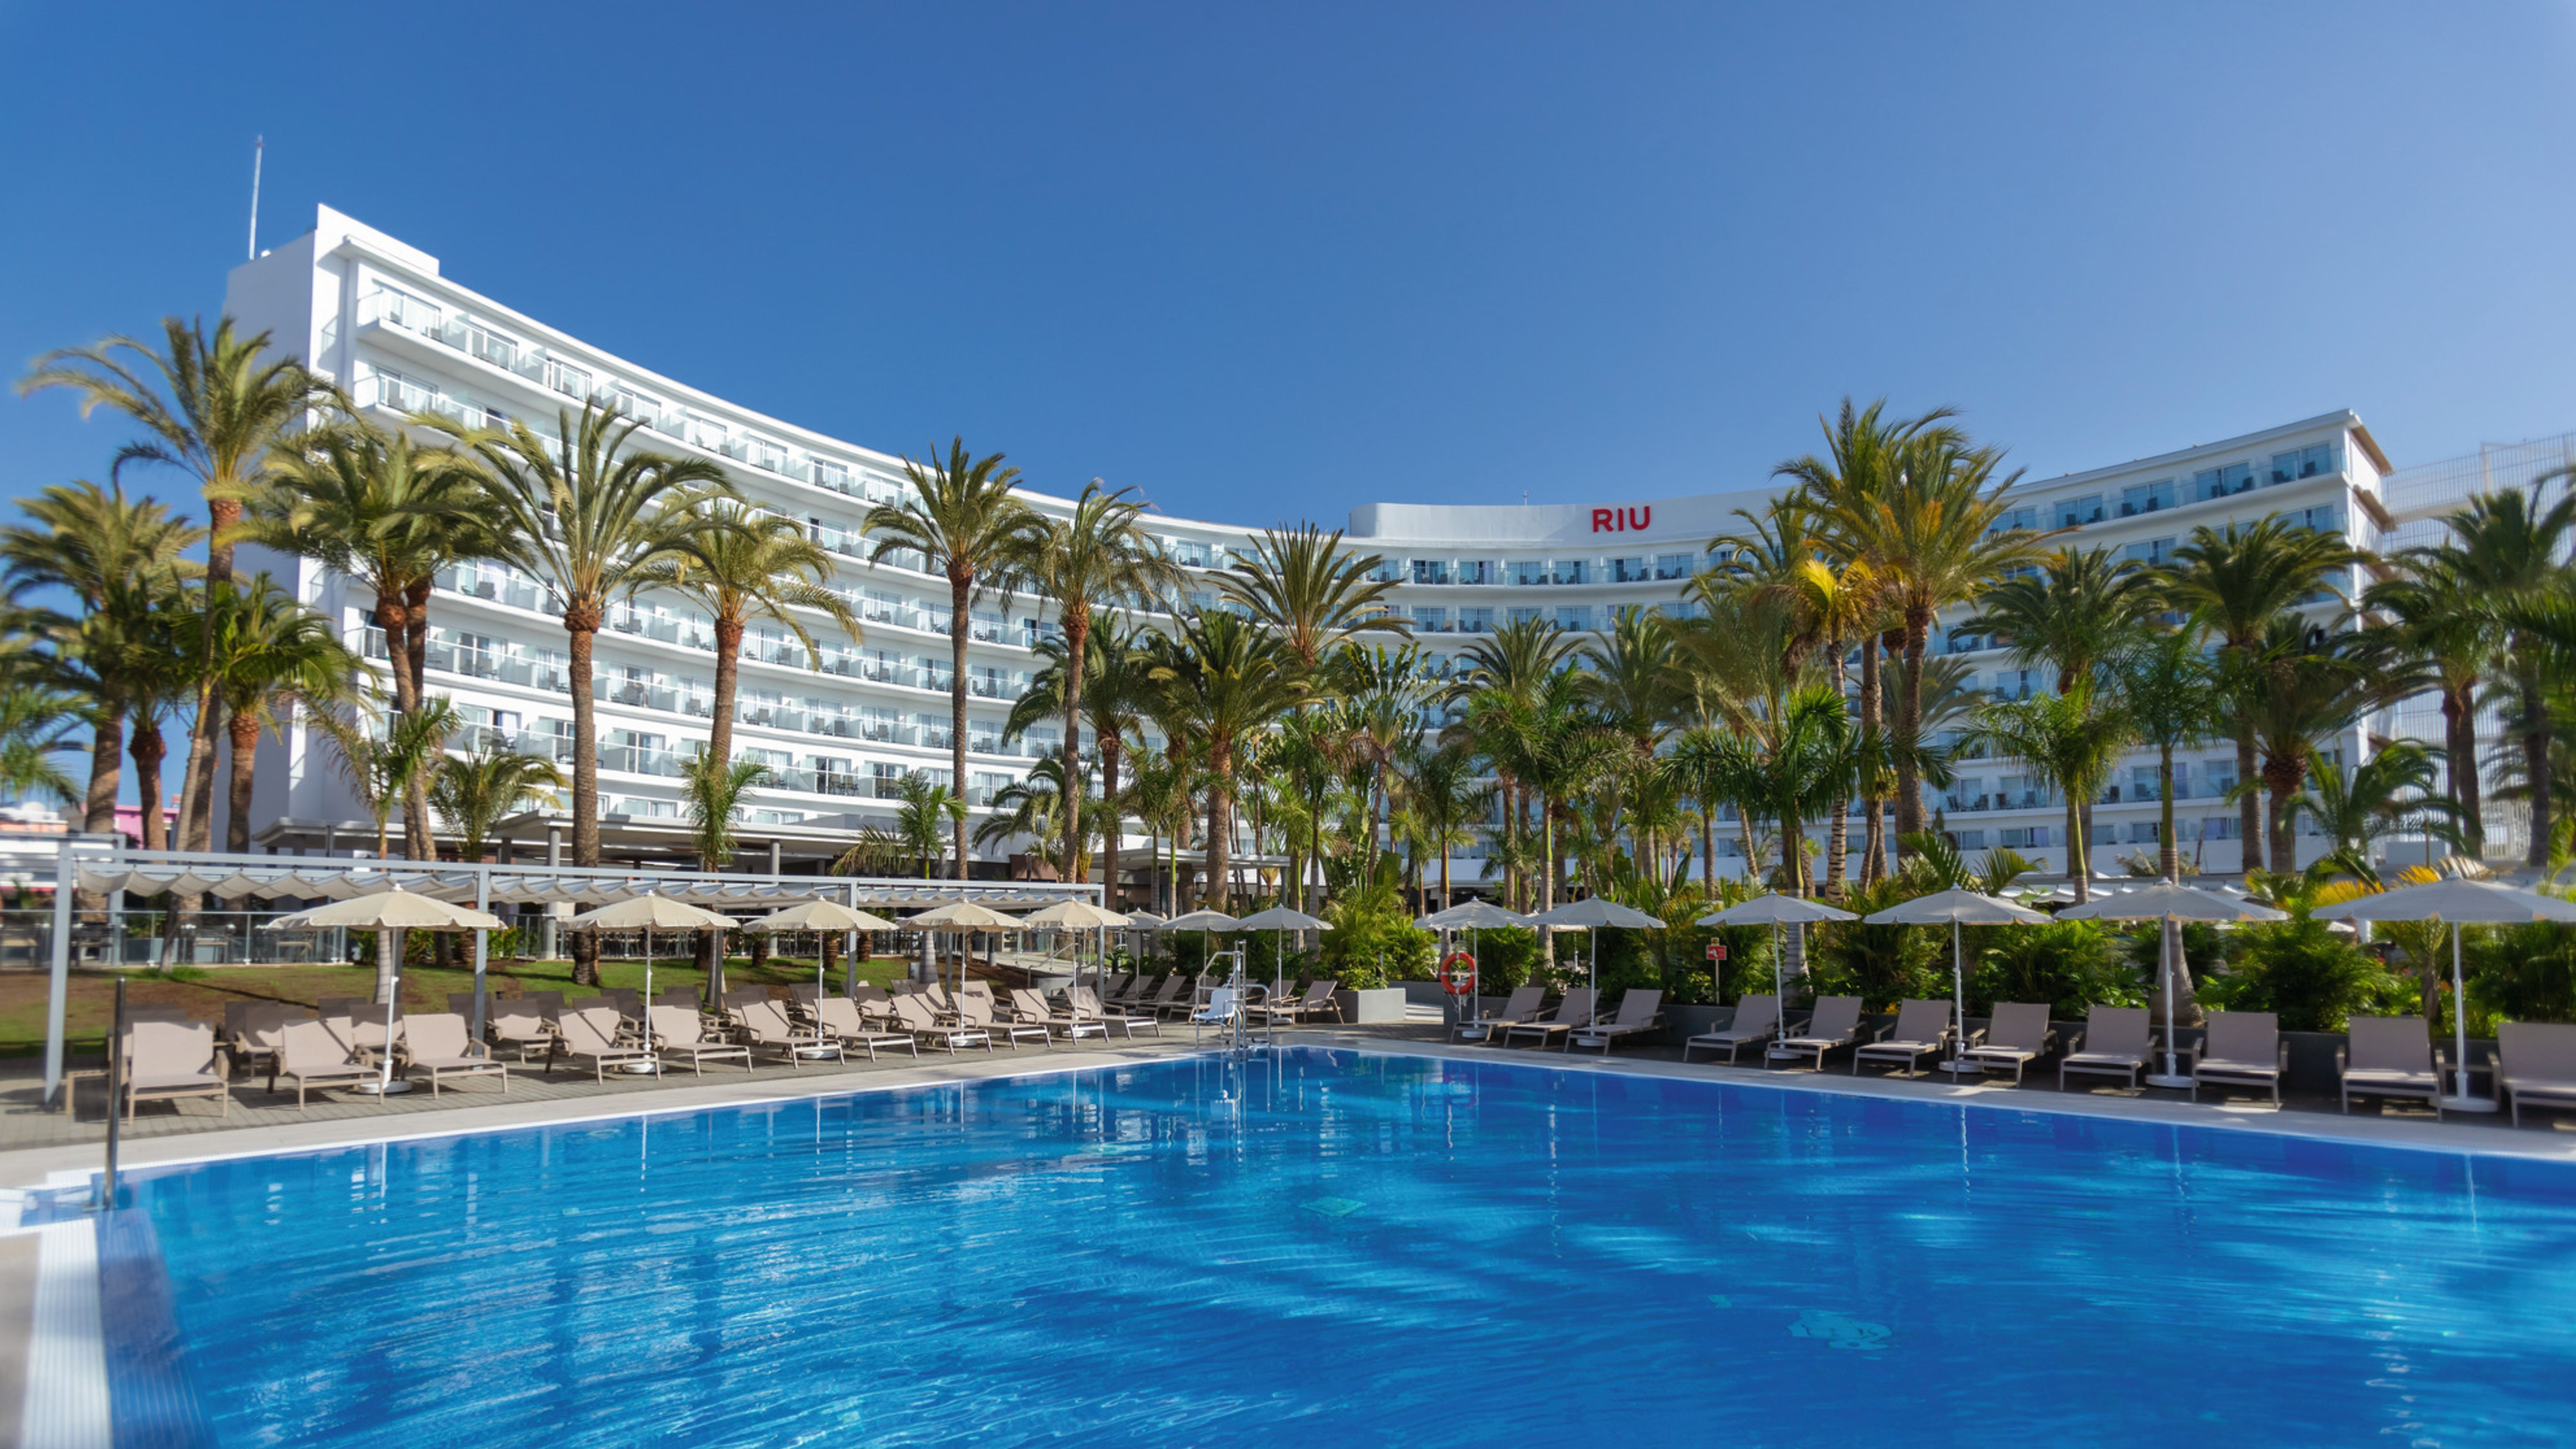 Ready for a comeback: Riu Hotel Palmeras on the island of Gran Canaria.